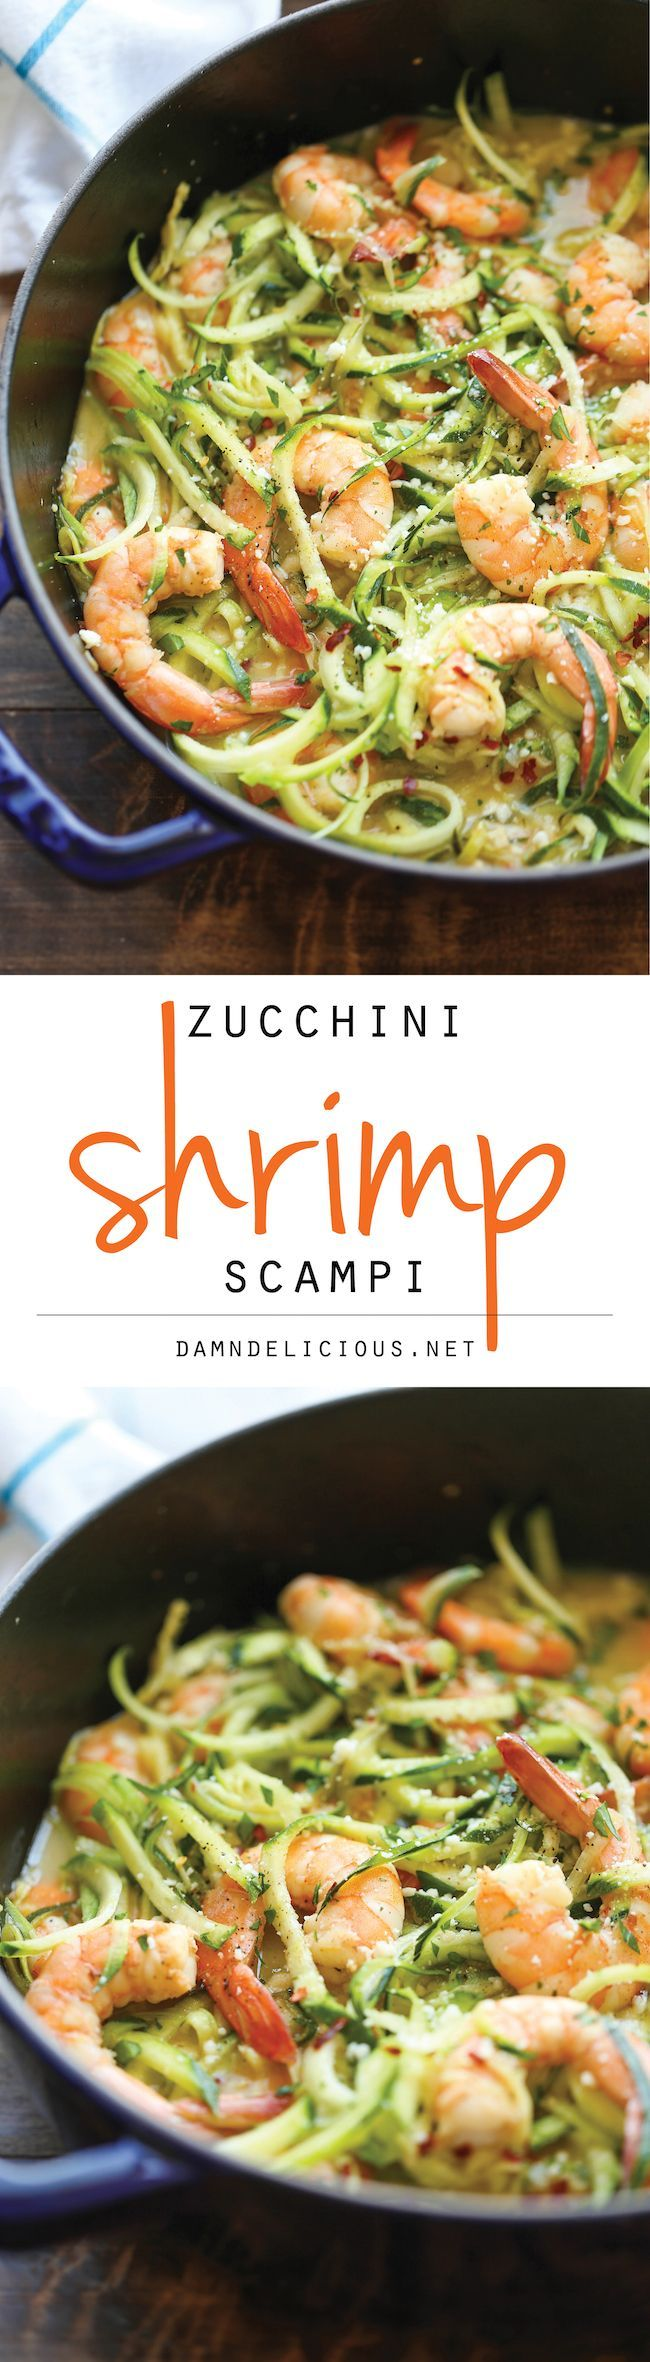 Shrimp Scampi Zucchini Shrimp Scampi - Traditional shrimp scampi made into a low-carb dish with zucchini noodles. It's unbelievably easy, quick & healthy! 214.3 calories.Zucchini Shrimp Scampi - Traditional shrimp scampi made into a low-carb dish with zucchini noodles. It's unbelievably easy, quick & healthy! 214.3 calories.